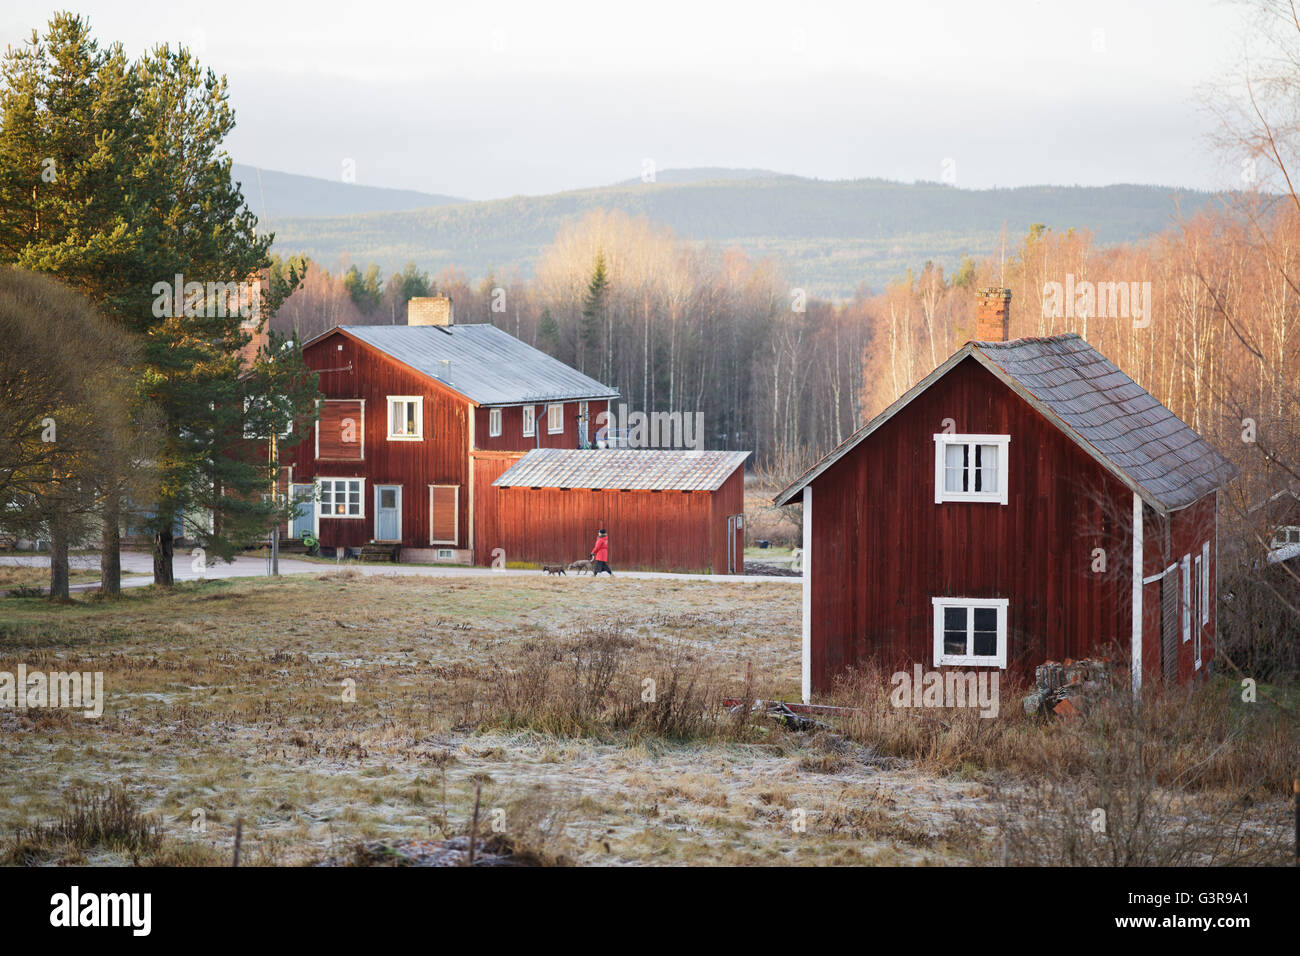 Sweden, Dalarna, Solleron, Red wooden houses in autumn landscape - Stock Image